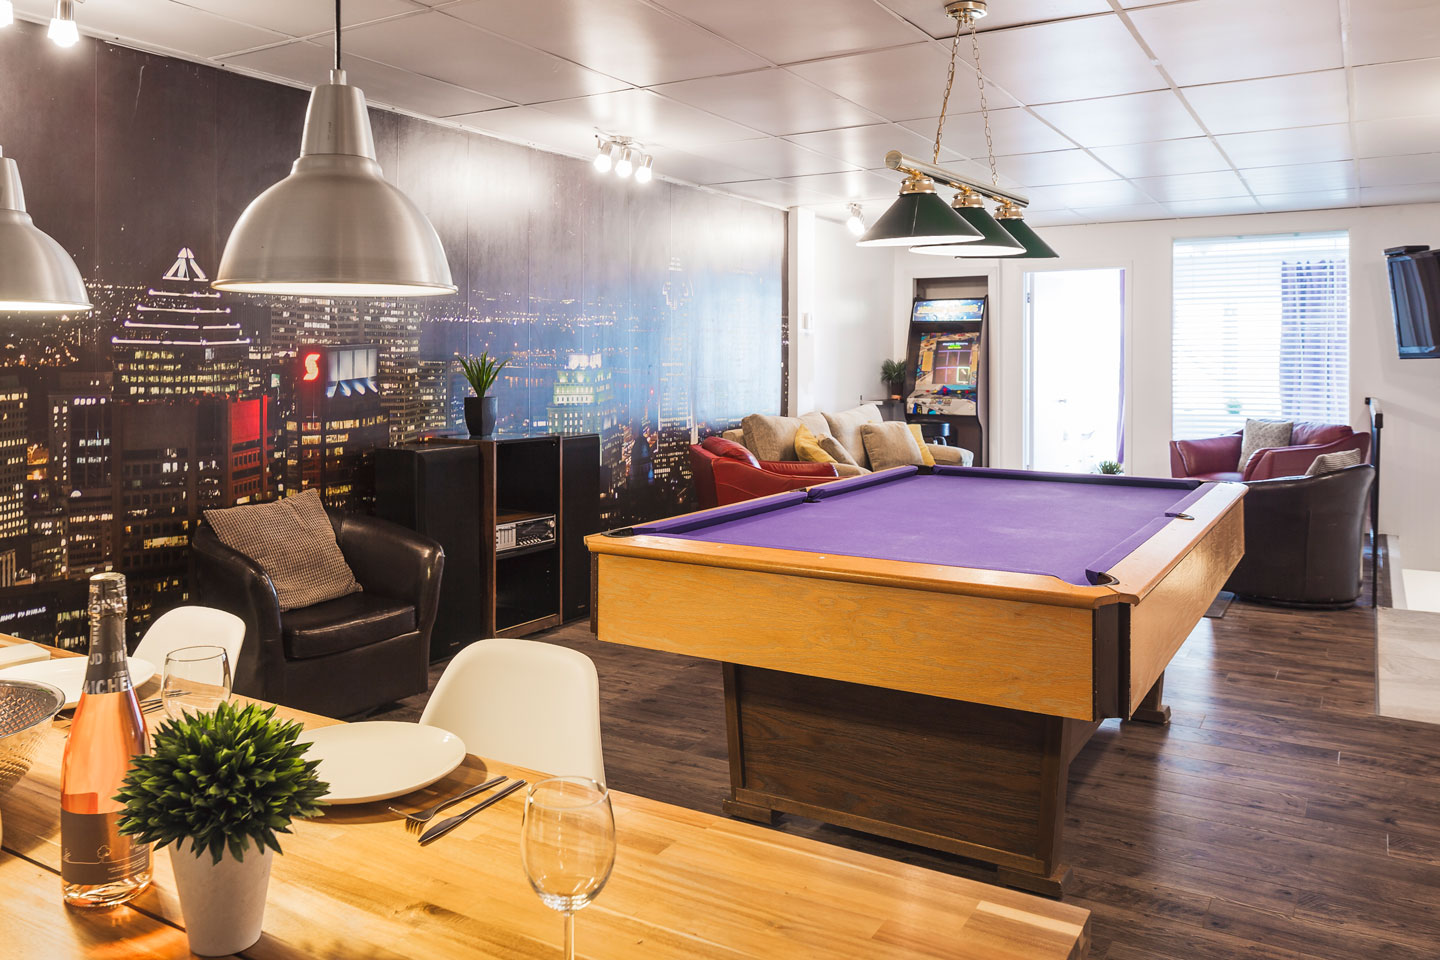 Entertainer: living area loft style